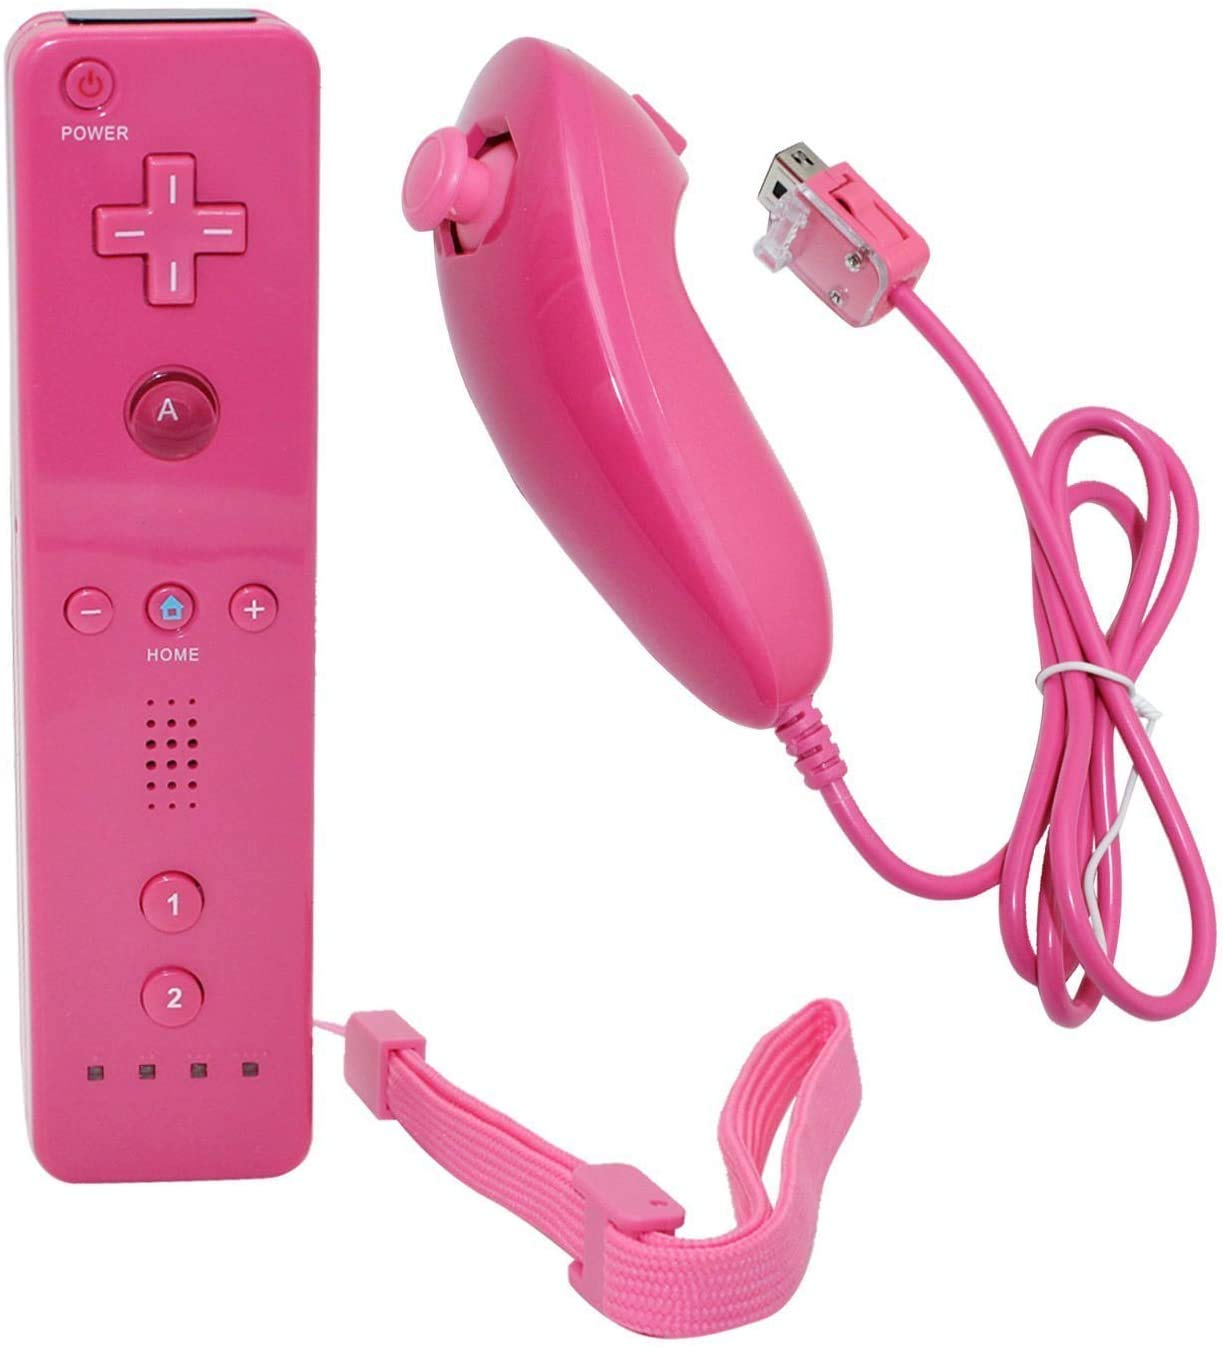 Remote Controller for Wii Nintendo, Wii Remote Controller with Built in Motion Plus and Nunchuk, Pink, 1 Pack, Compatible for Nintendo Wii, Wii U